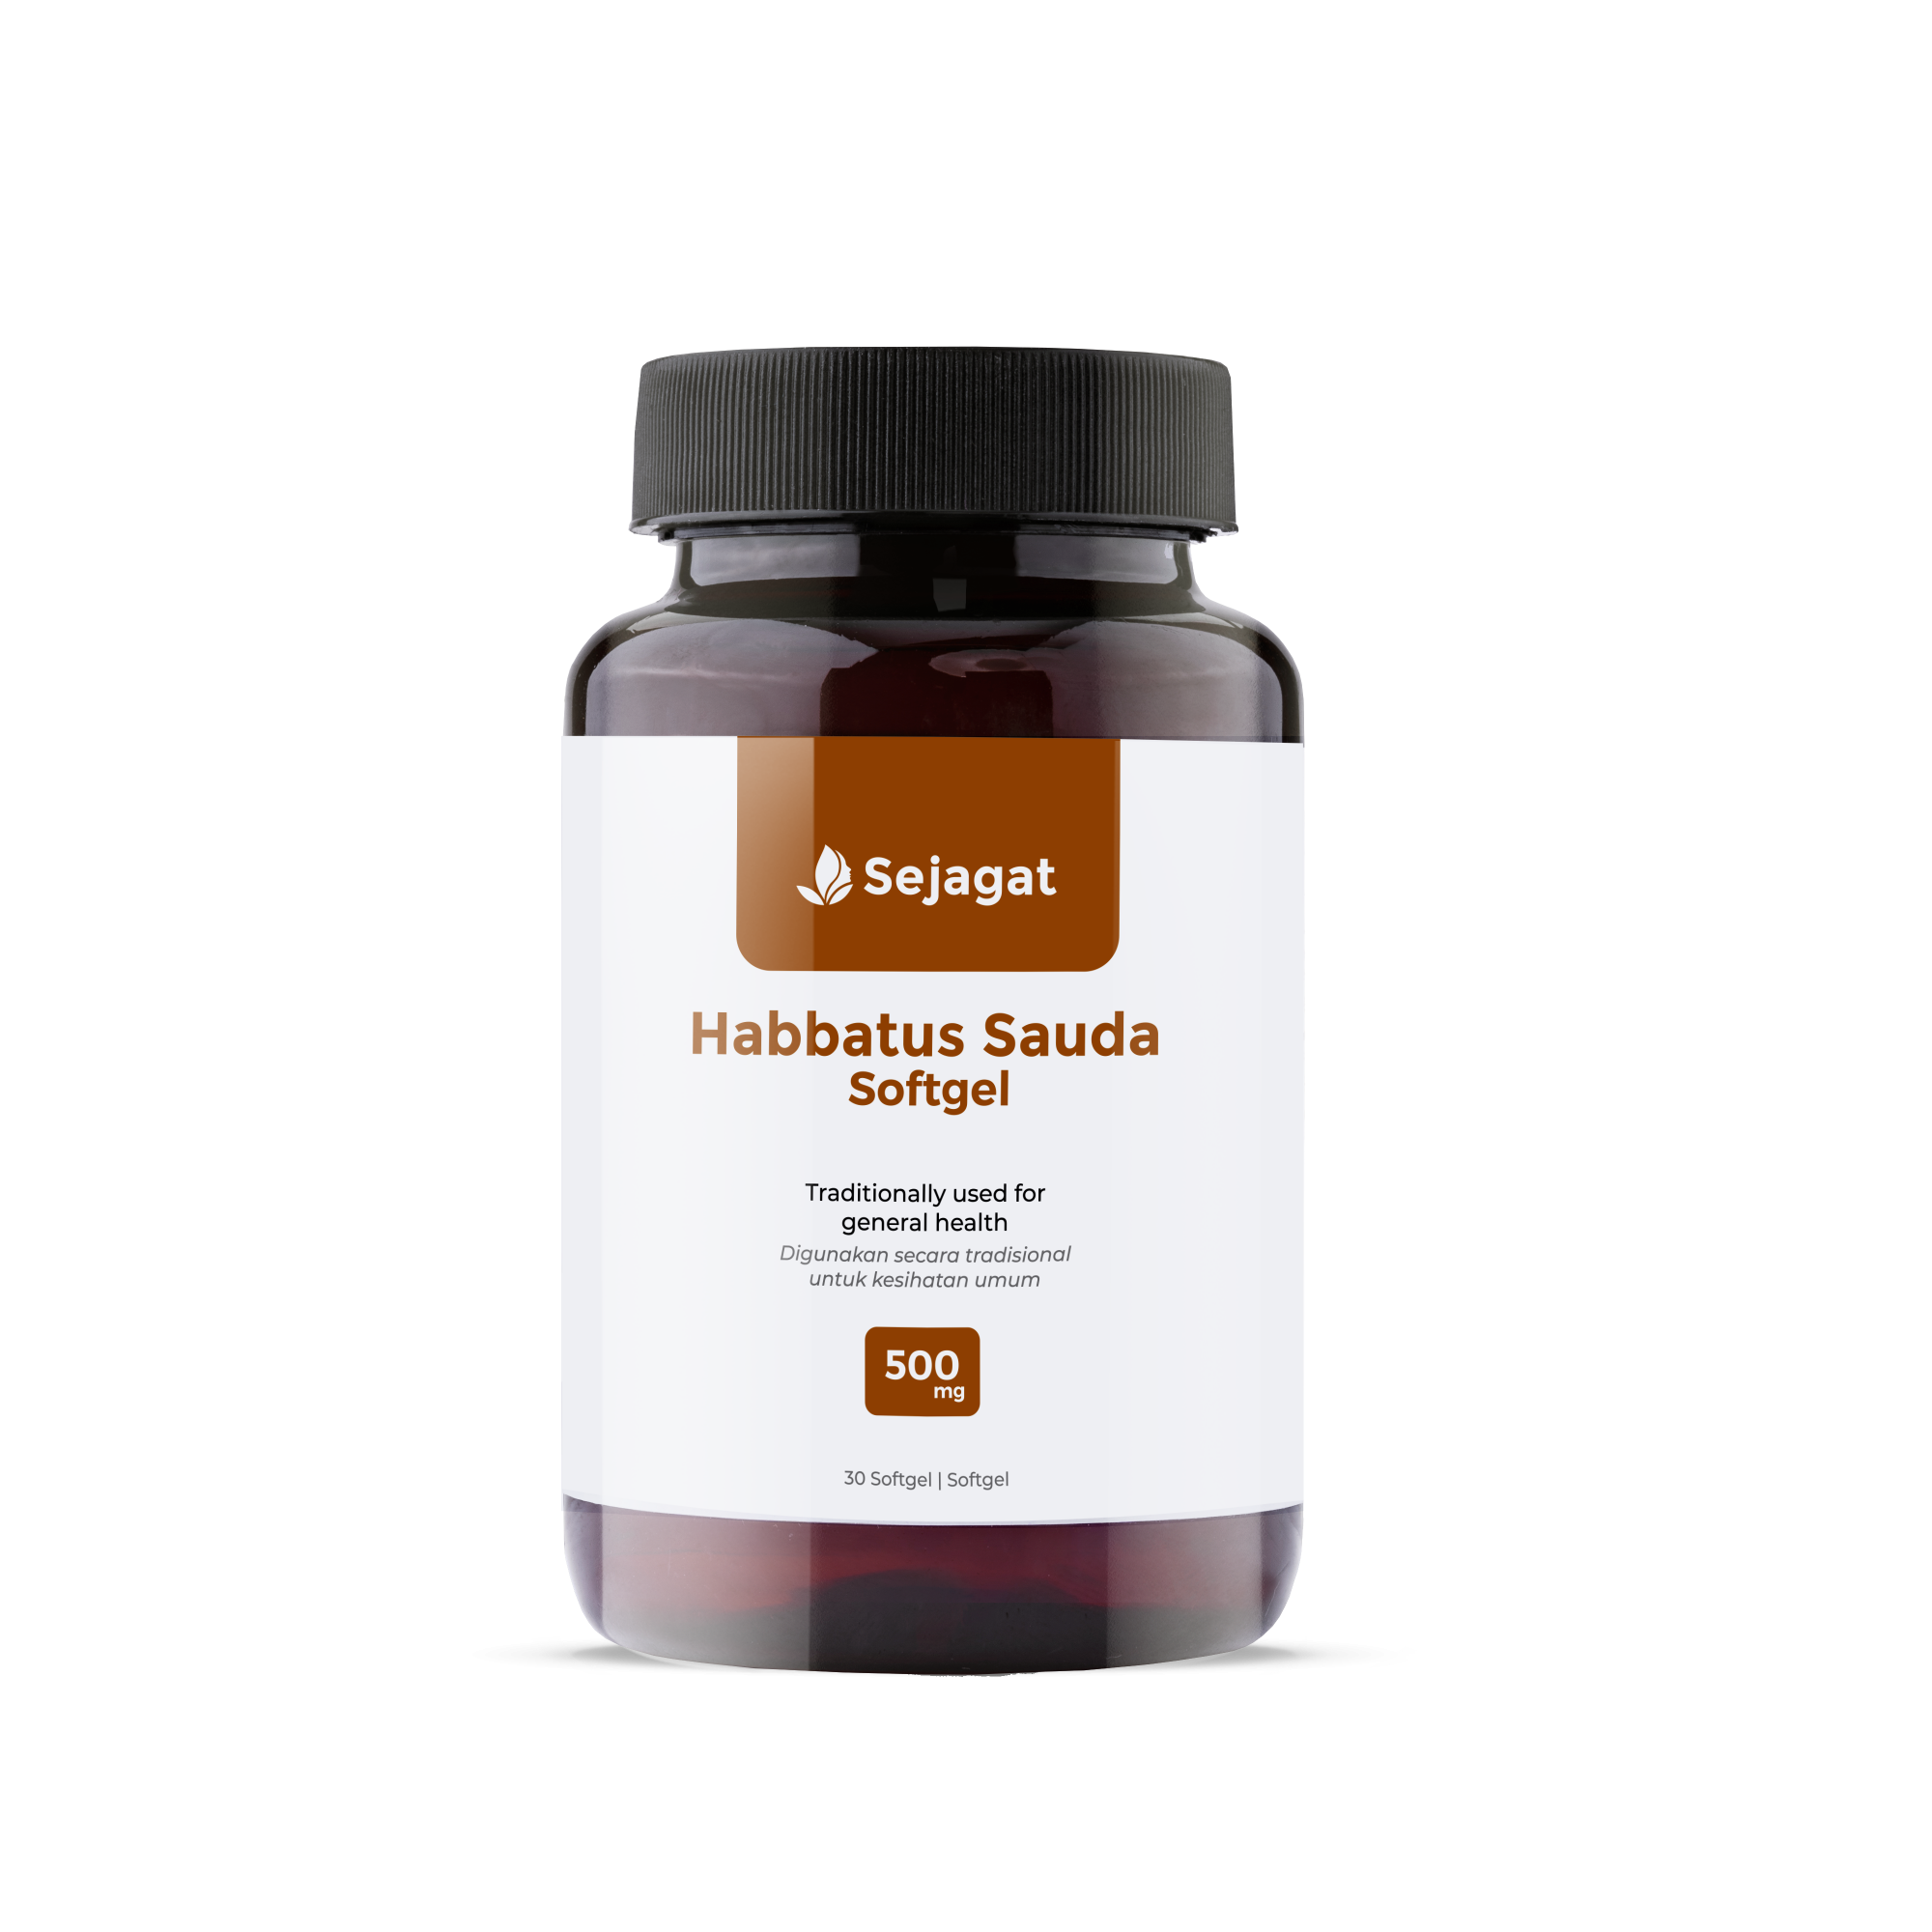 Habbatus Sauda Quality Softgel 500mg